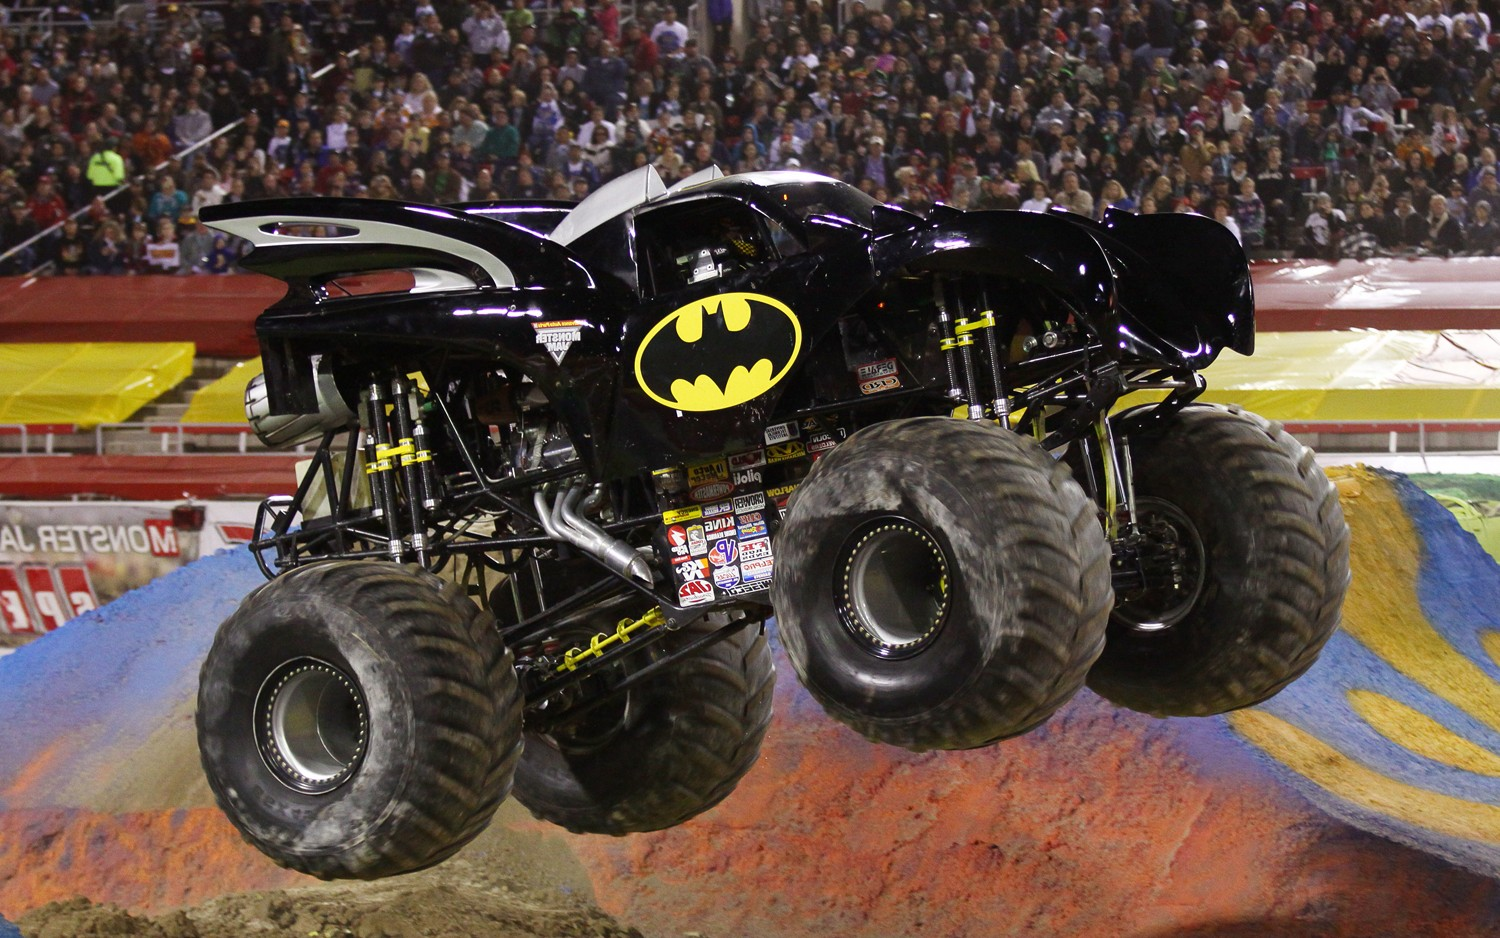 Free Download Monster Trucks 16659 Wallpaper Wallpaper Hd 1500x938 For Your Desktop Mobile Tablet Explore 68 Monster Trucks Wallpaper Grave Digger Wallpaper Grave Digger Monster Truck Wallpaper Monster Jam Wallpaper